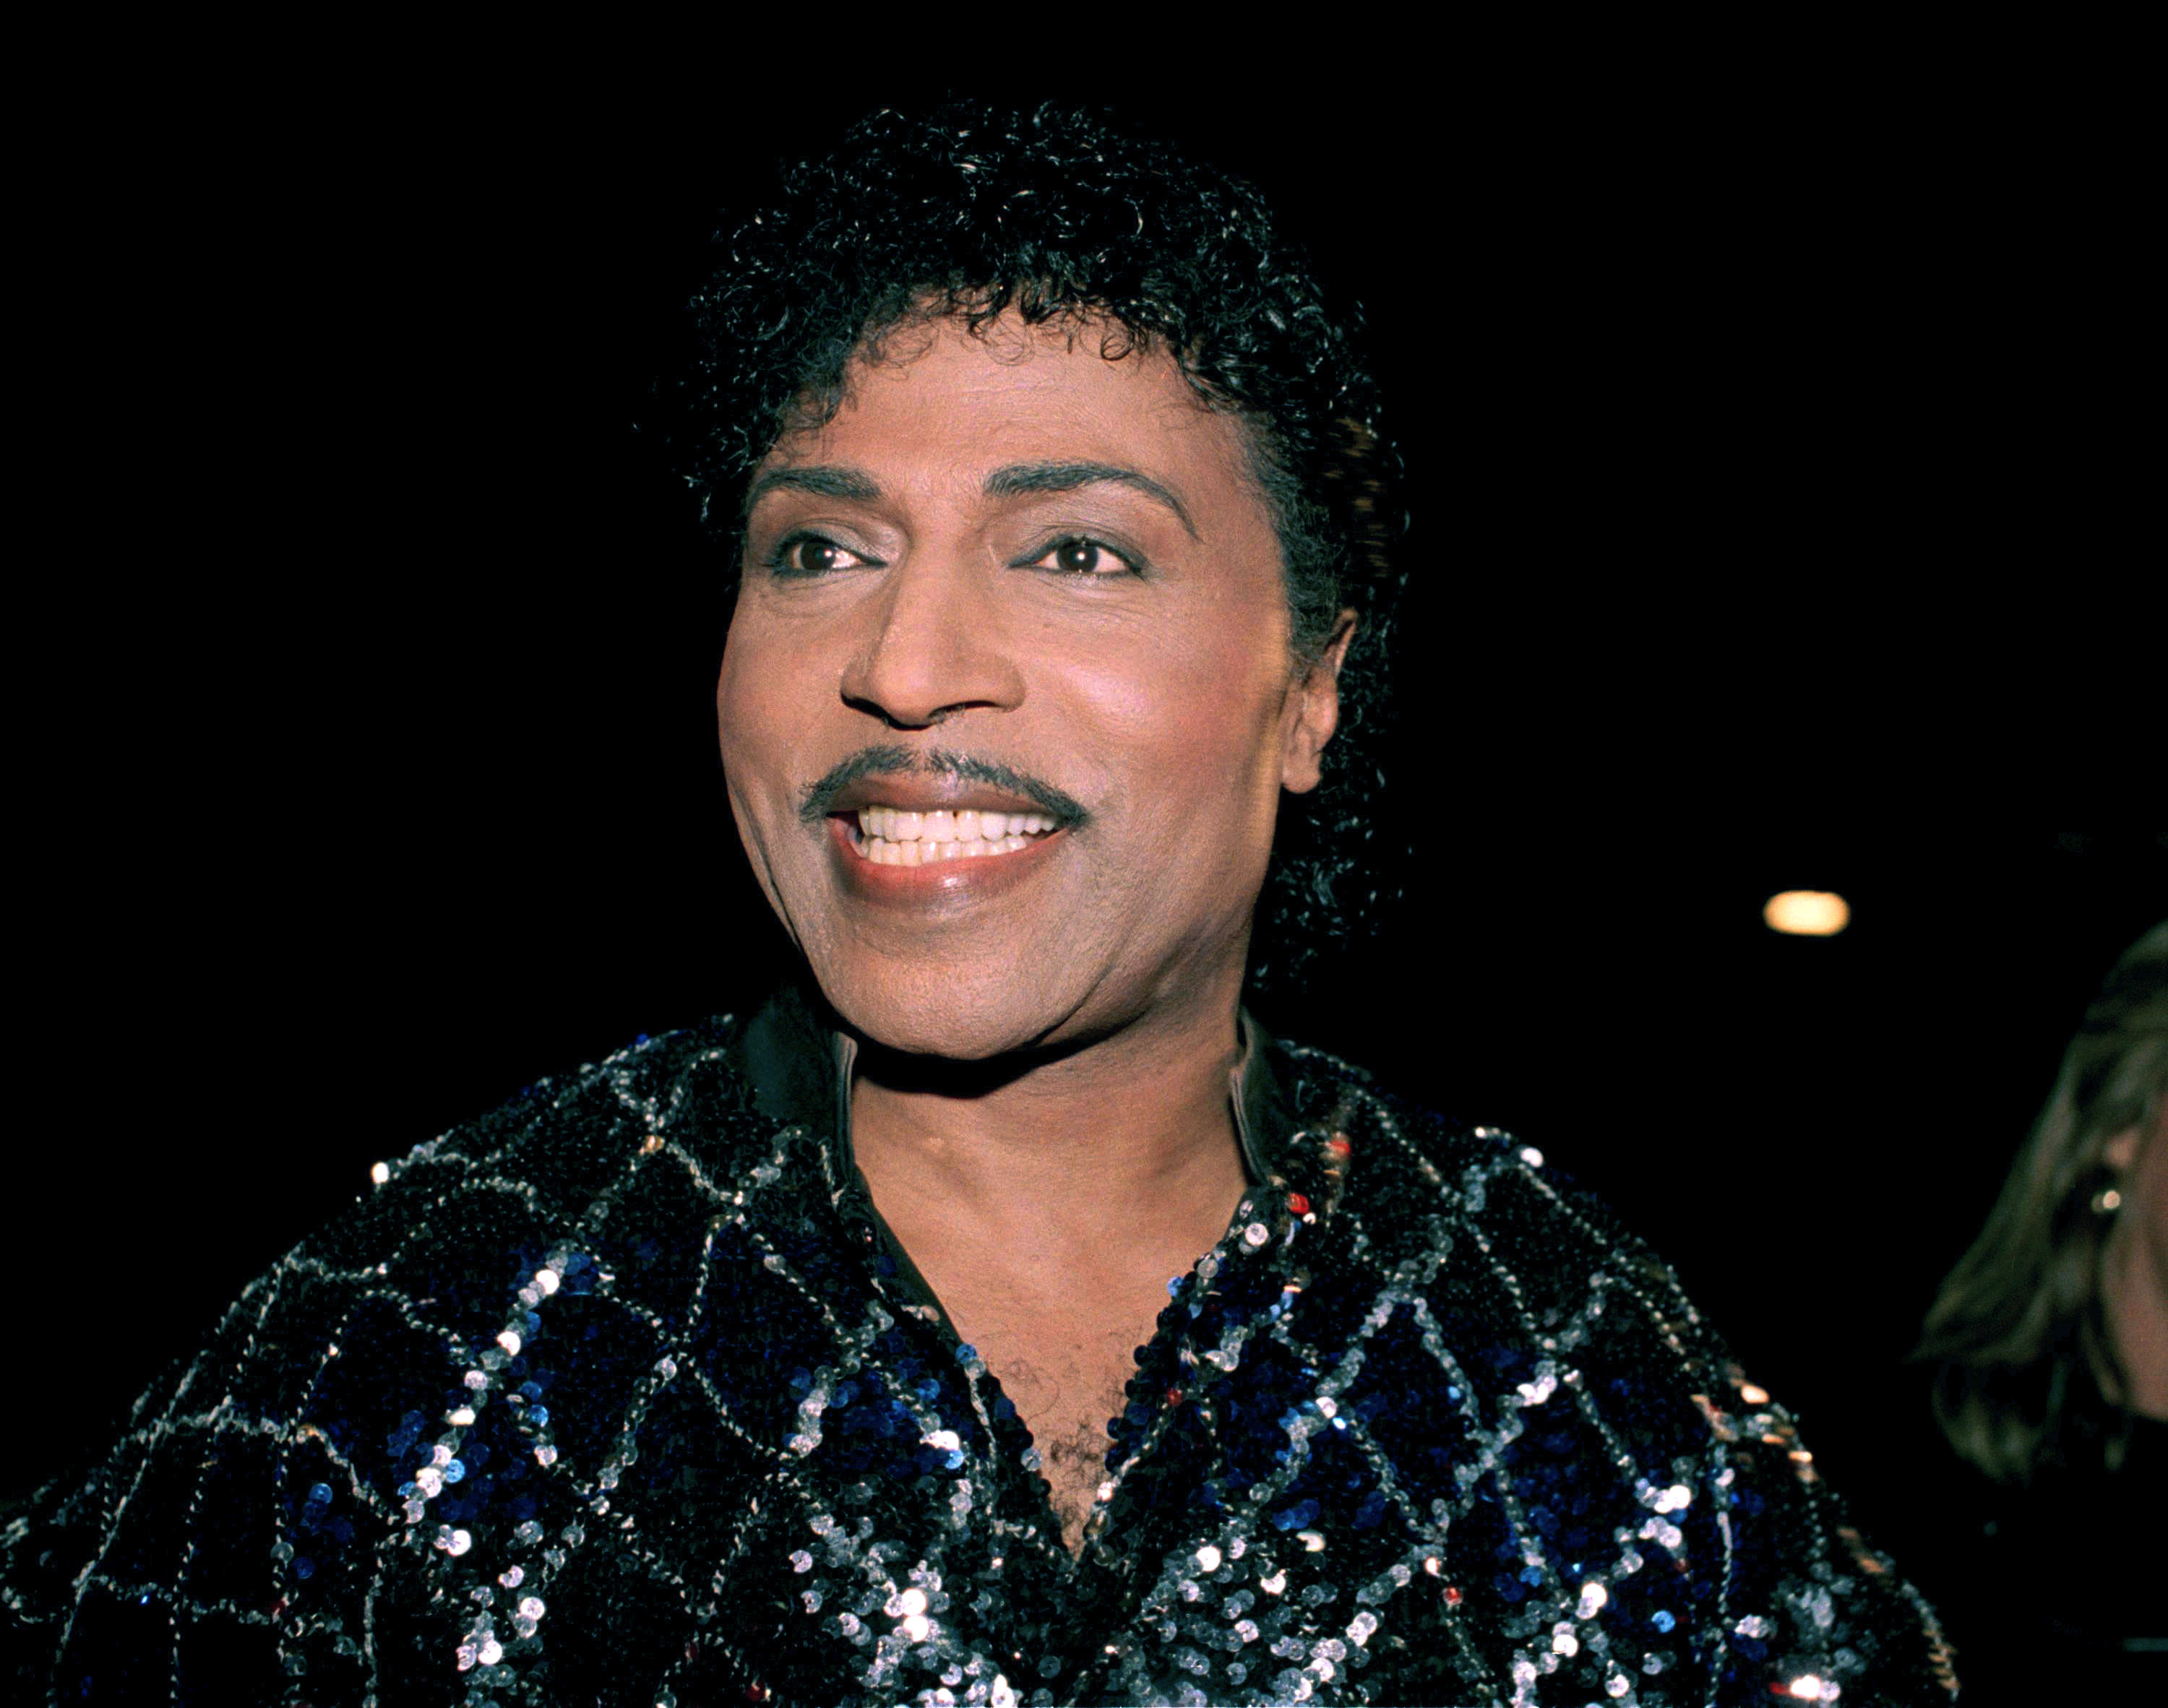 """FILE - This Nov. 13, 1986 photo shows Little Richard in Los Angeles. Little Richard, the self-proclaimed """"architect of rock 'n' roll"""" whose piercing wail, pounding piano and towering pompadour irrevocably altered popular music while introducing black R&B to white America, has died Saturday, May 9, 2020. (AP Photo/Mark Avery, File)"""